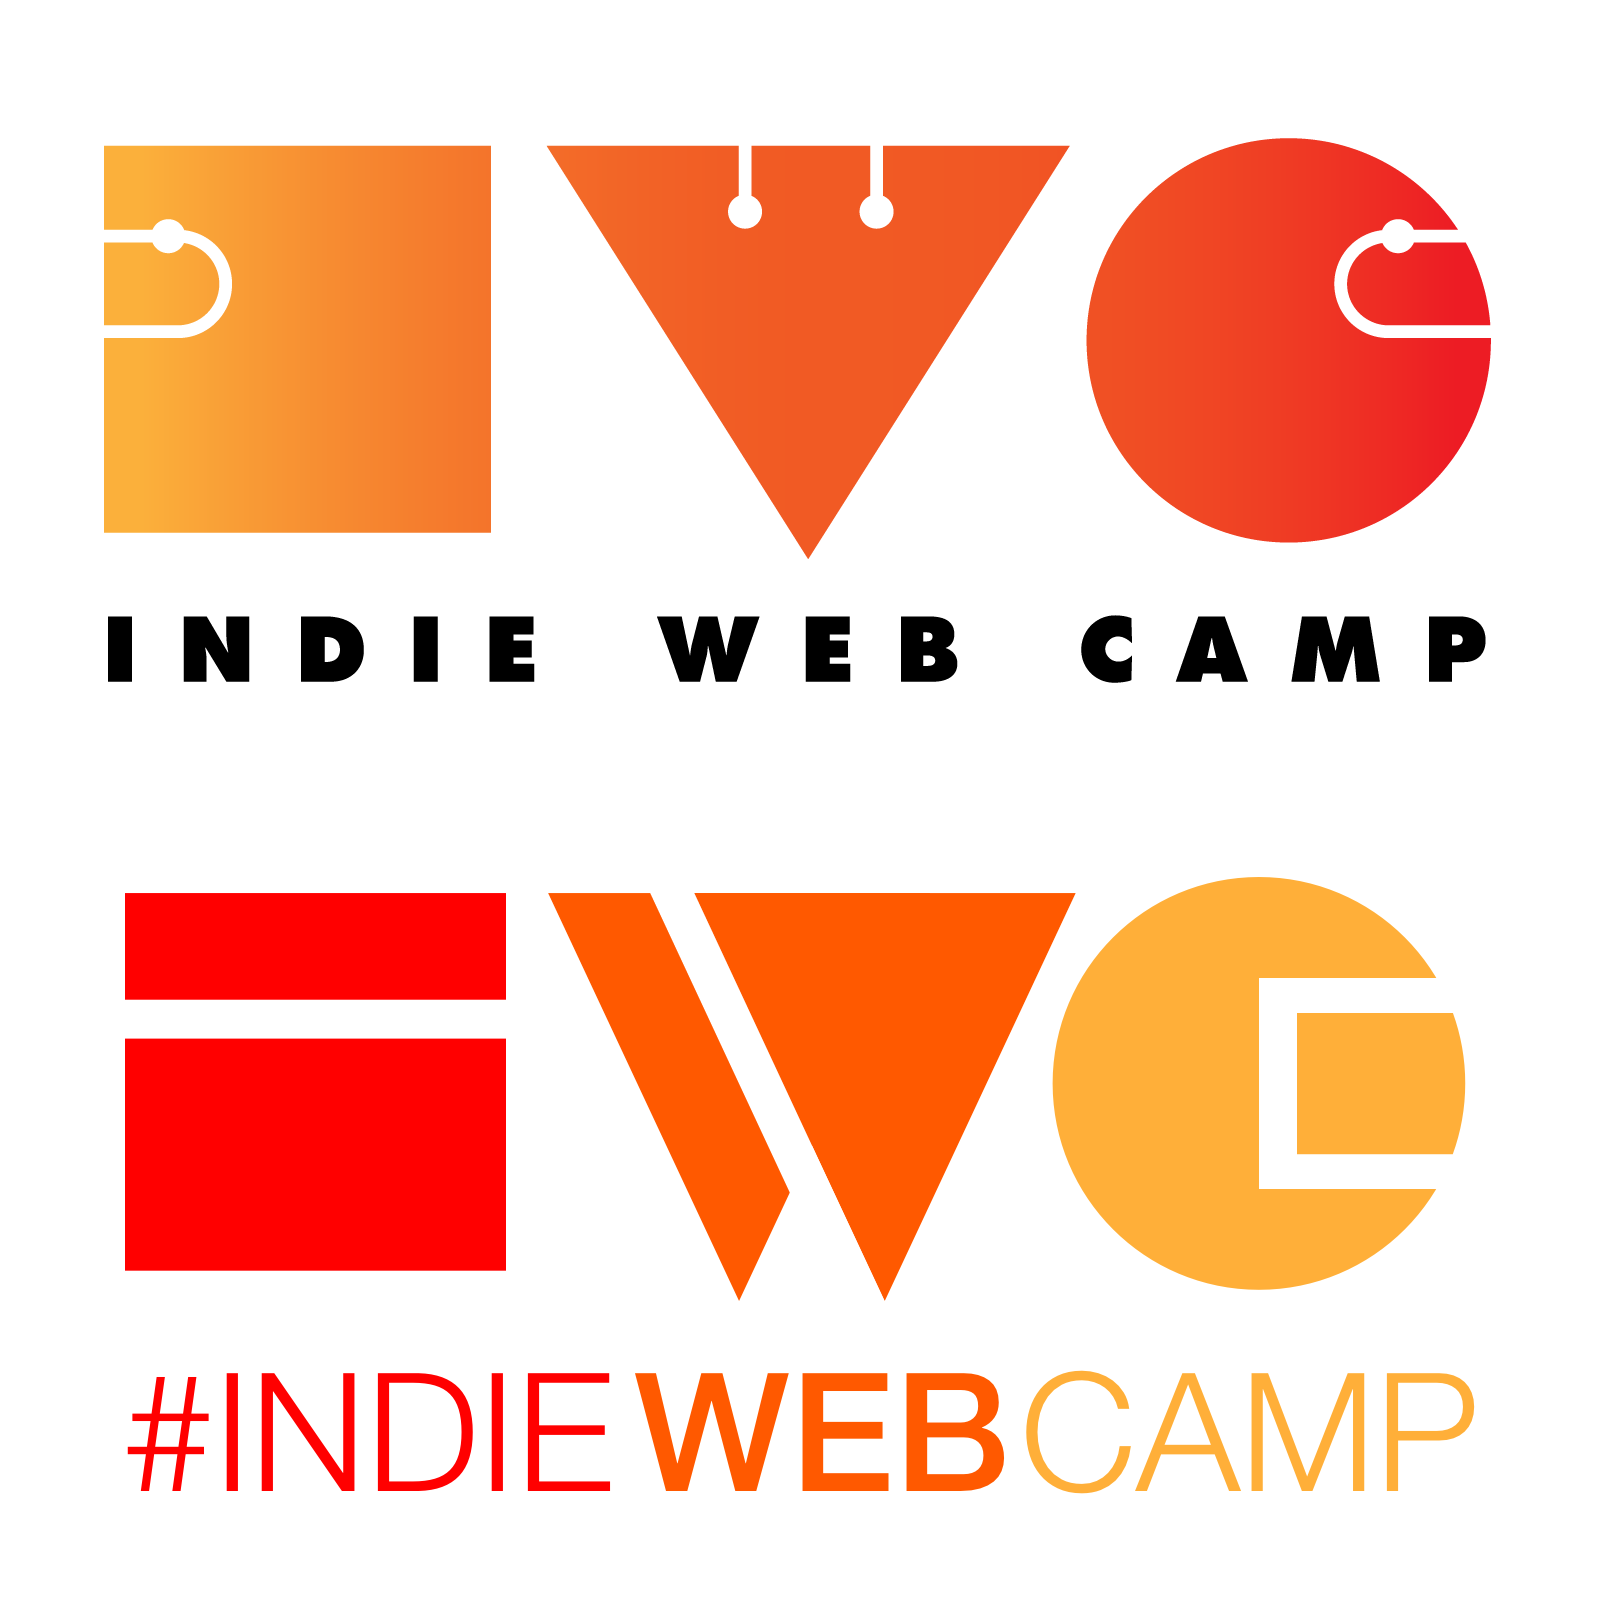 Current and New IndieWebCamp logo comparison